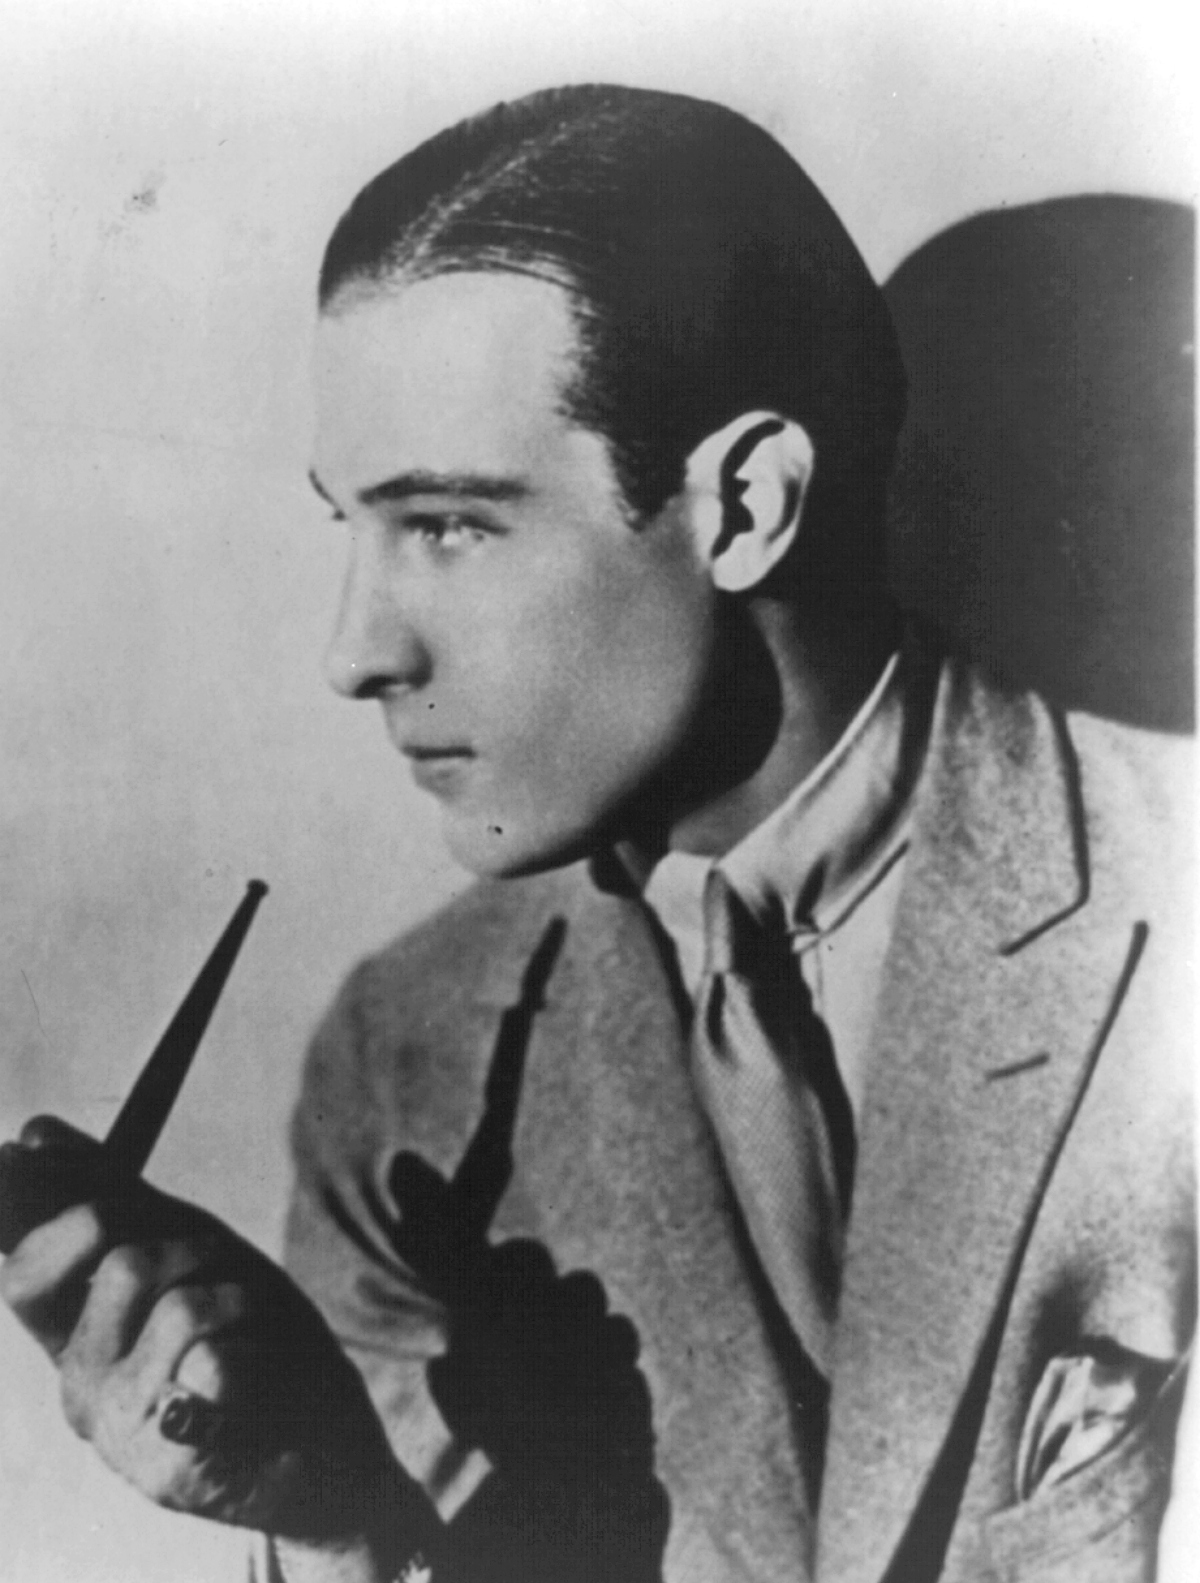 Rudolph Valentino holding a pipe